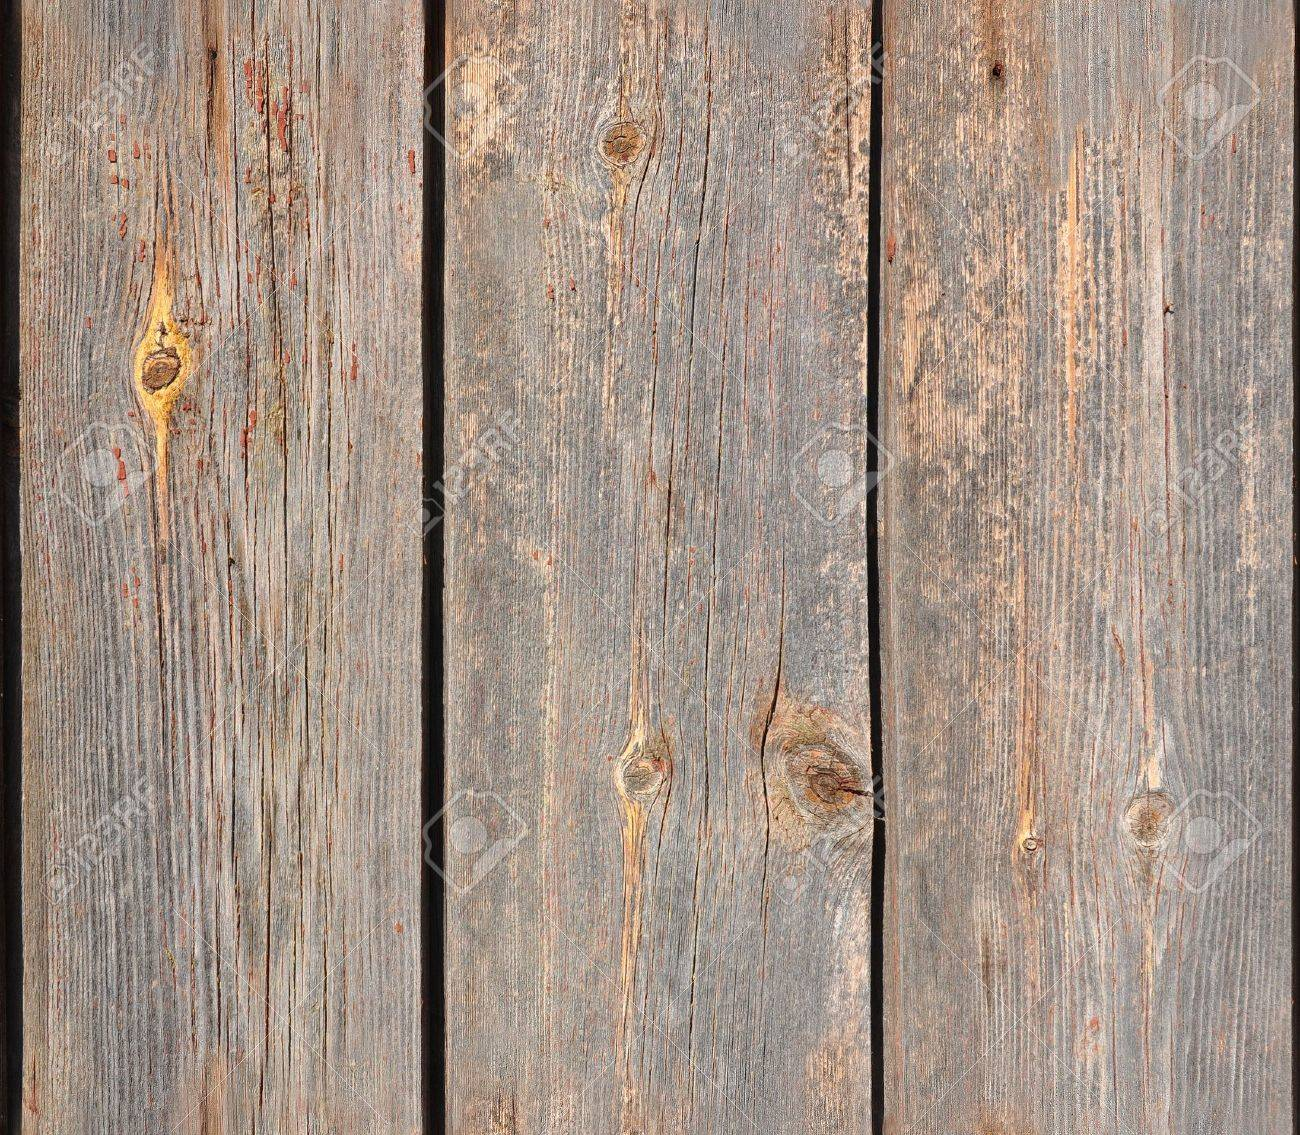 Seamless old wood texture background tiles seamlessly in all directions - 16211805